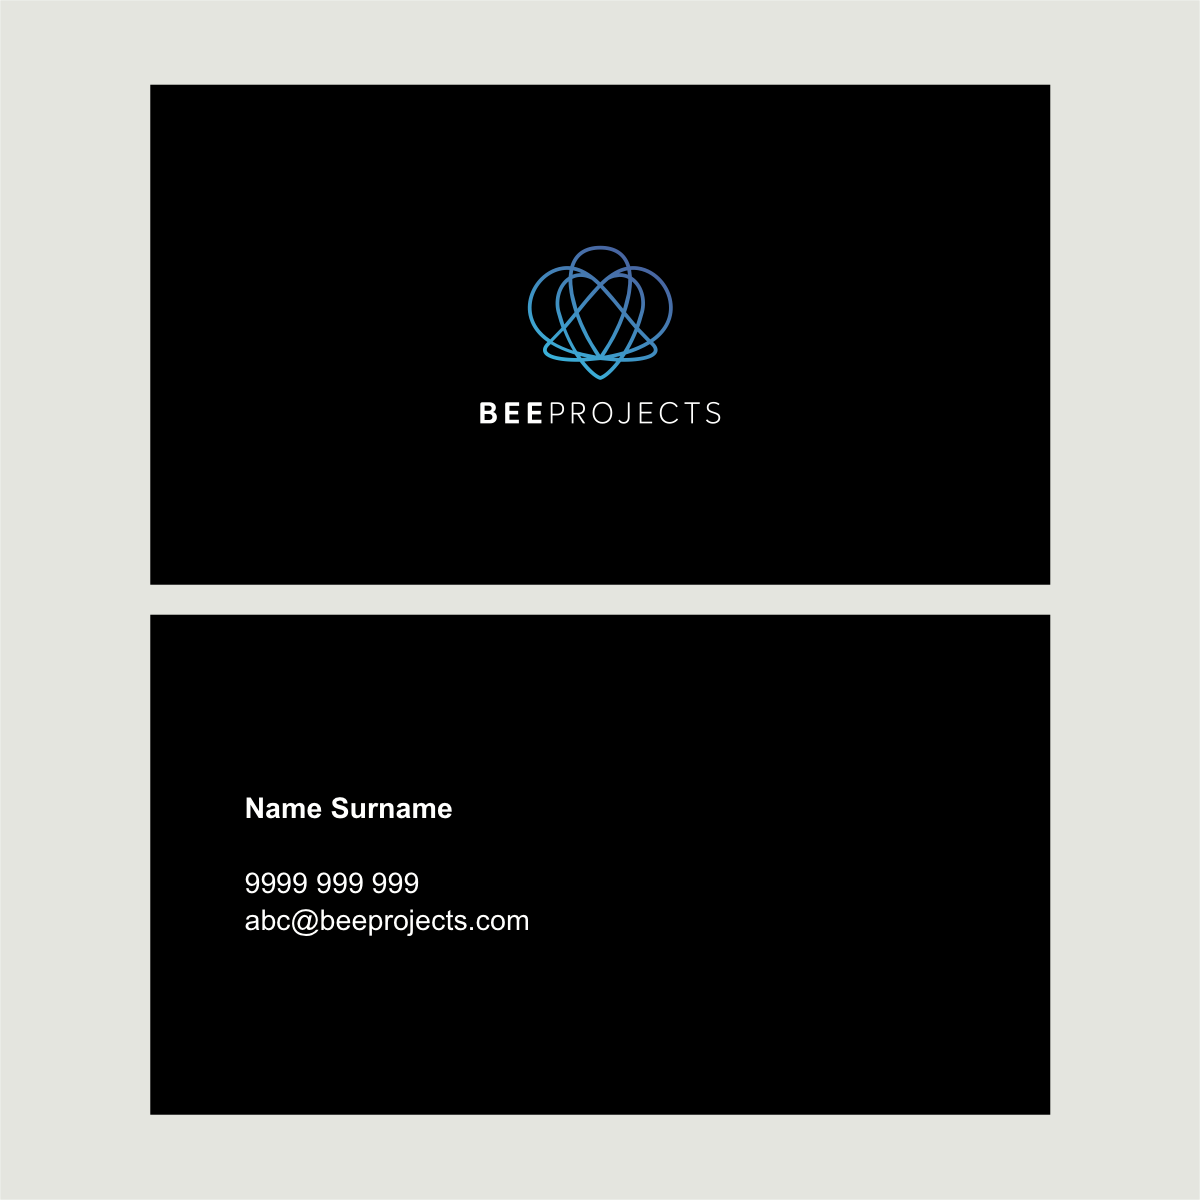 Creation of our logo, business card and web home page design